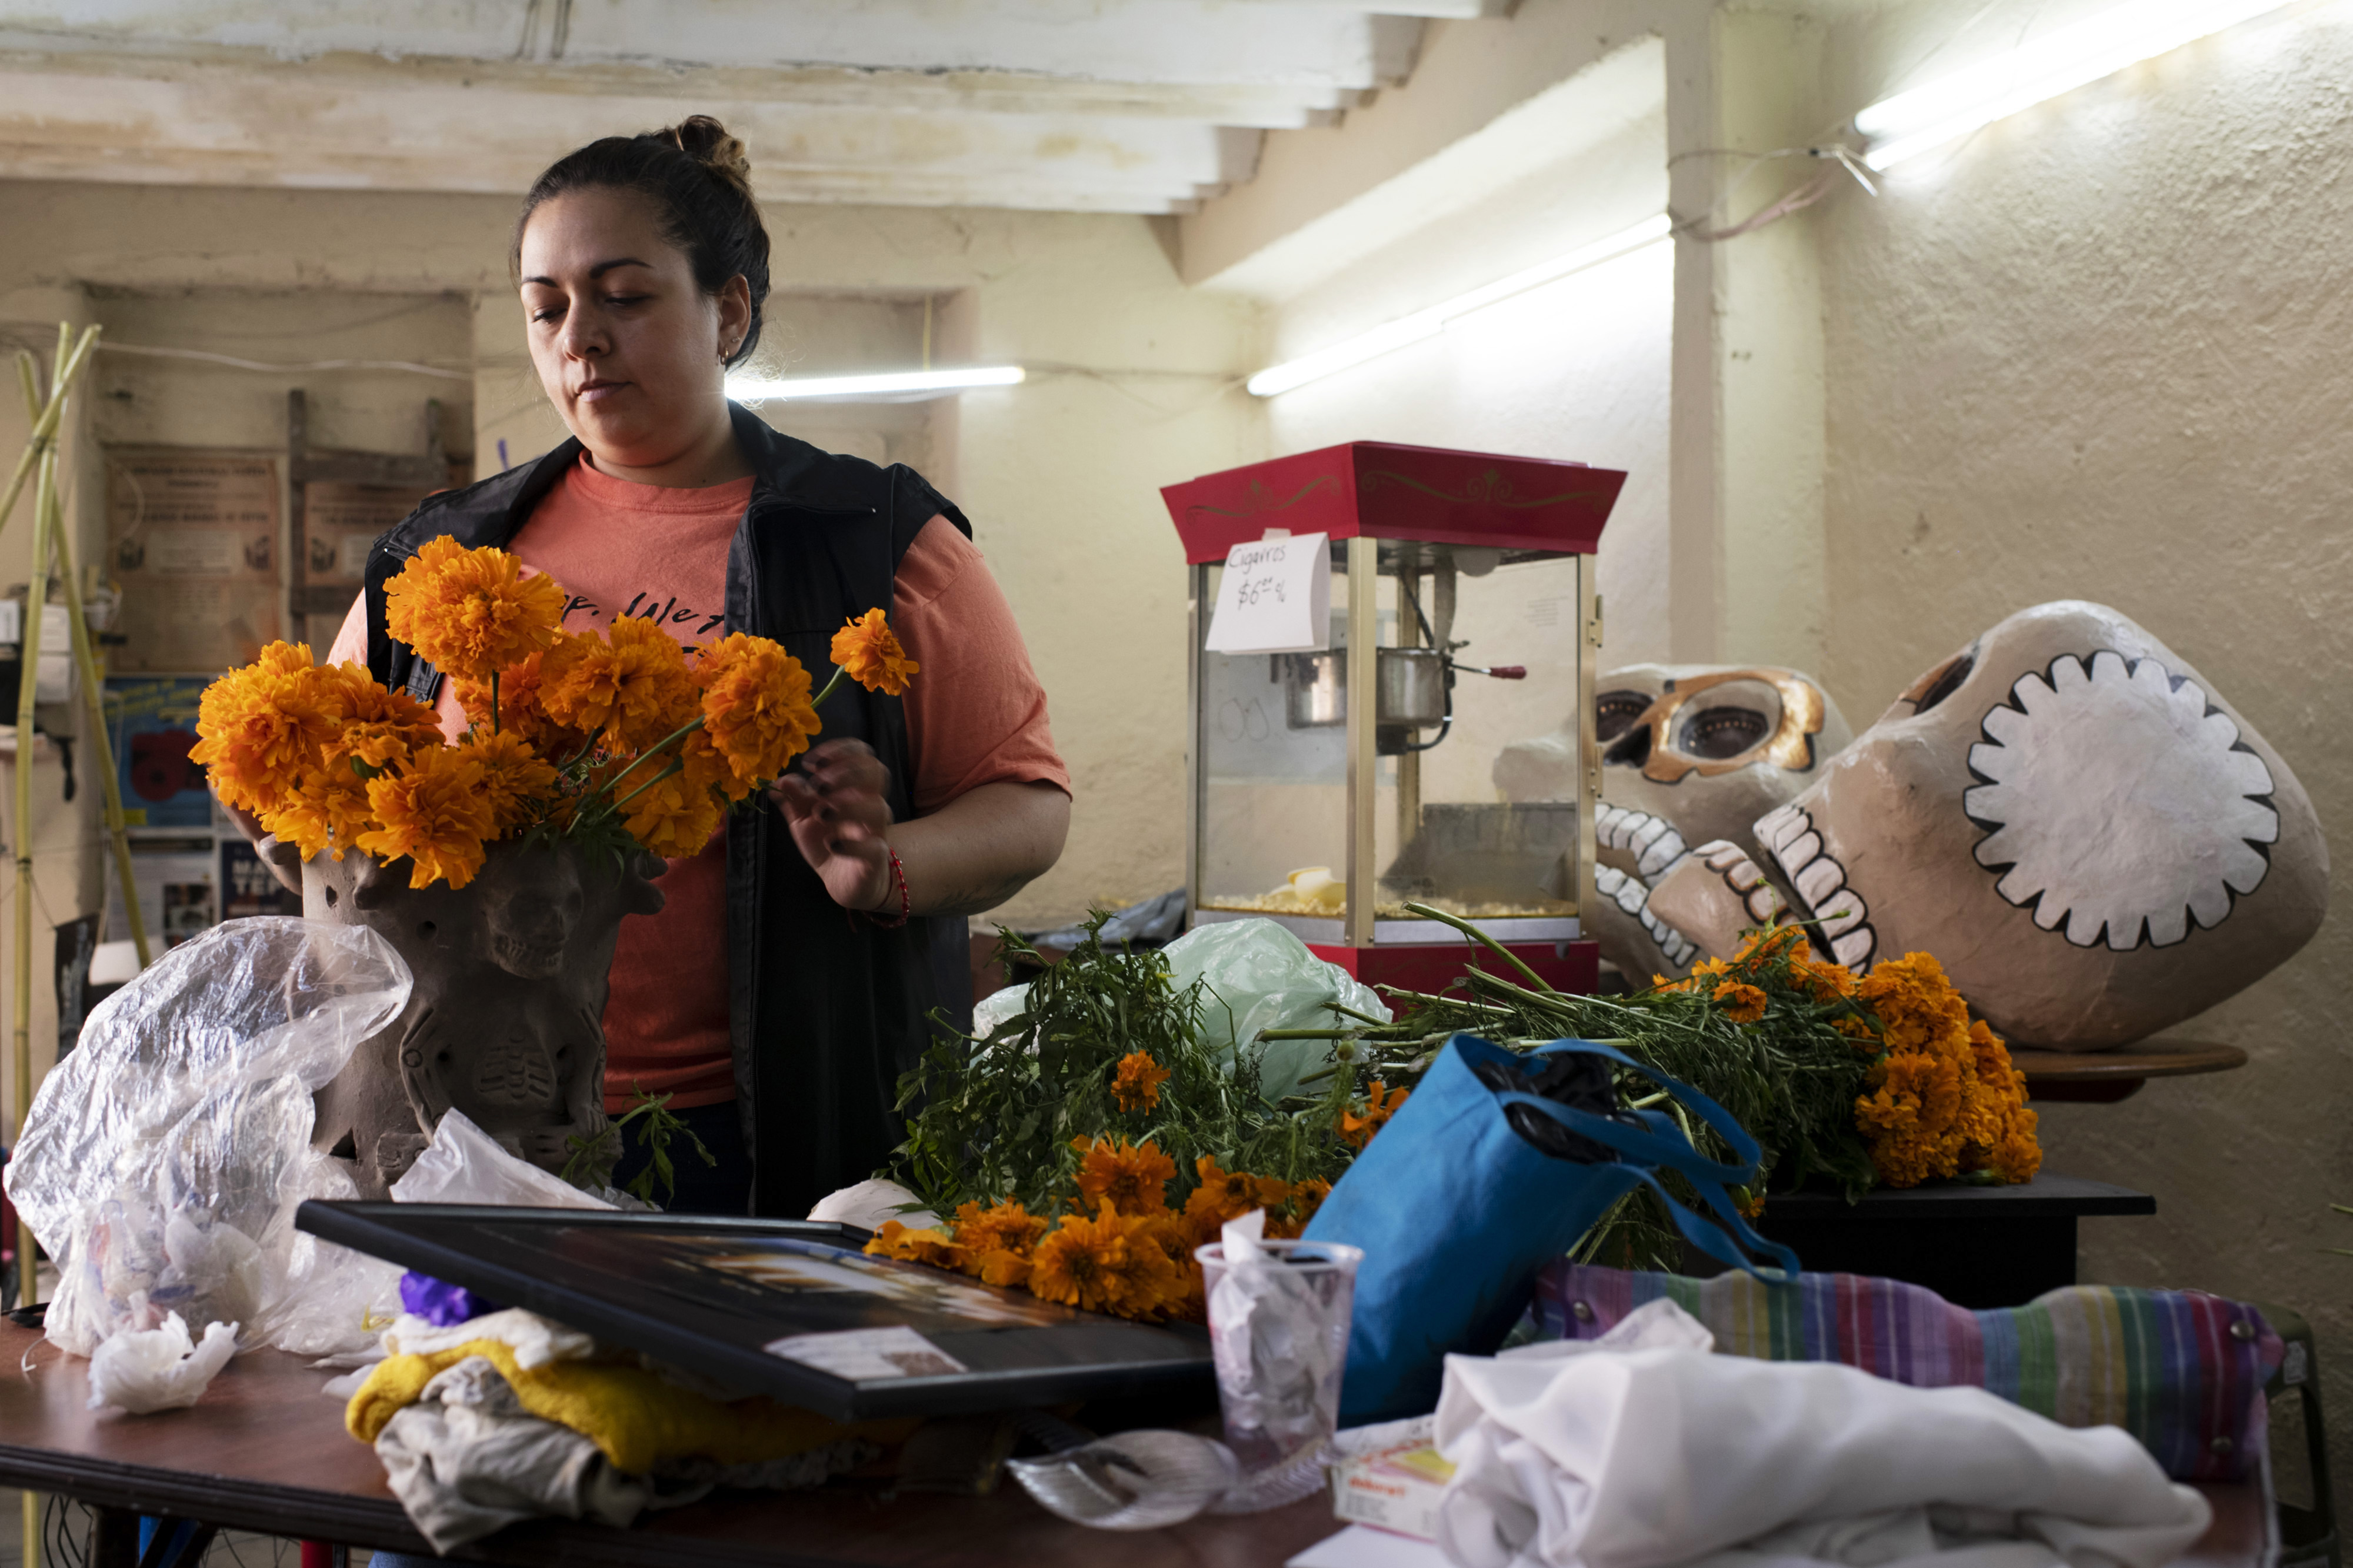 Malinali Garcia, who is part of the Tepito cultural space, is making preparations to put on the traditional offering for the Day of the Dead